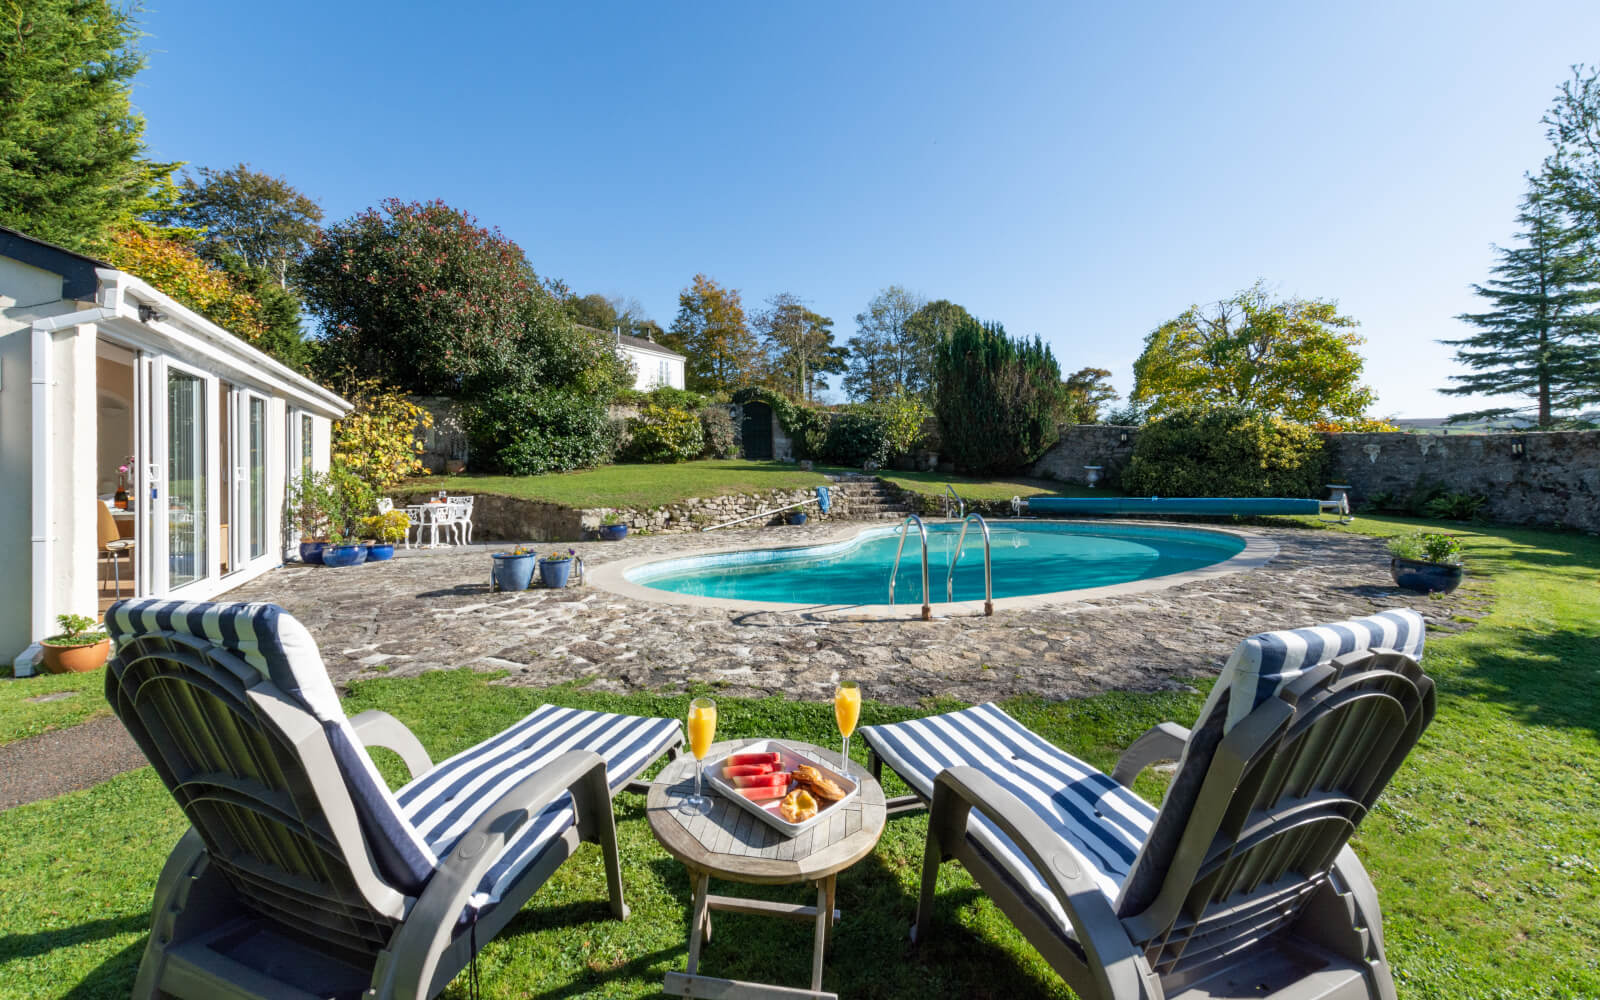 Holiday Cottages With Swimming Pools In Bath To Rent - Save up to 60%